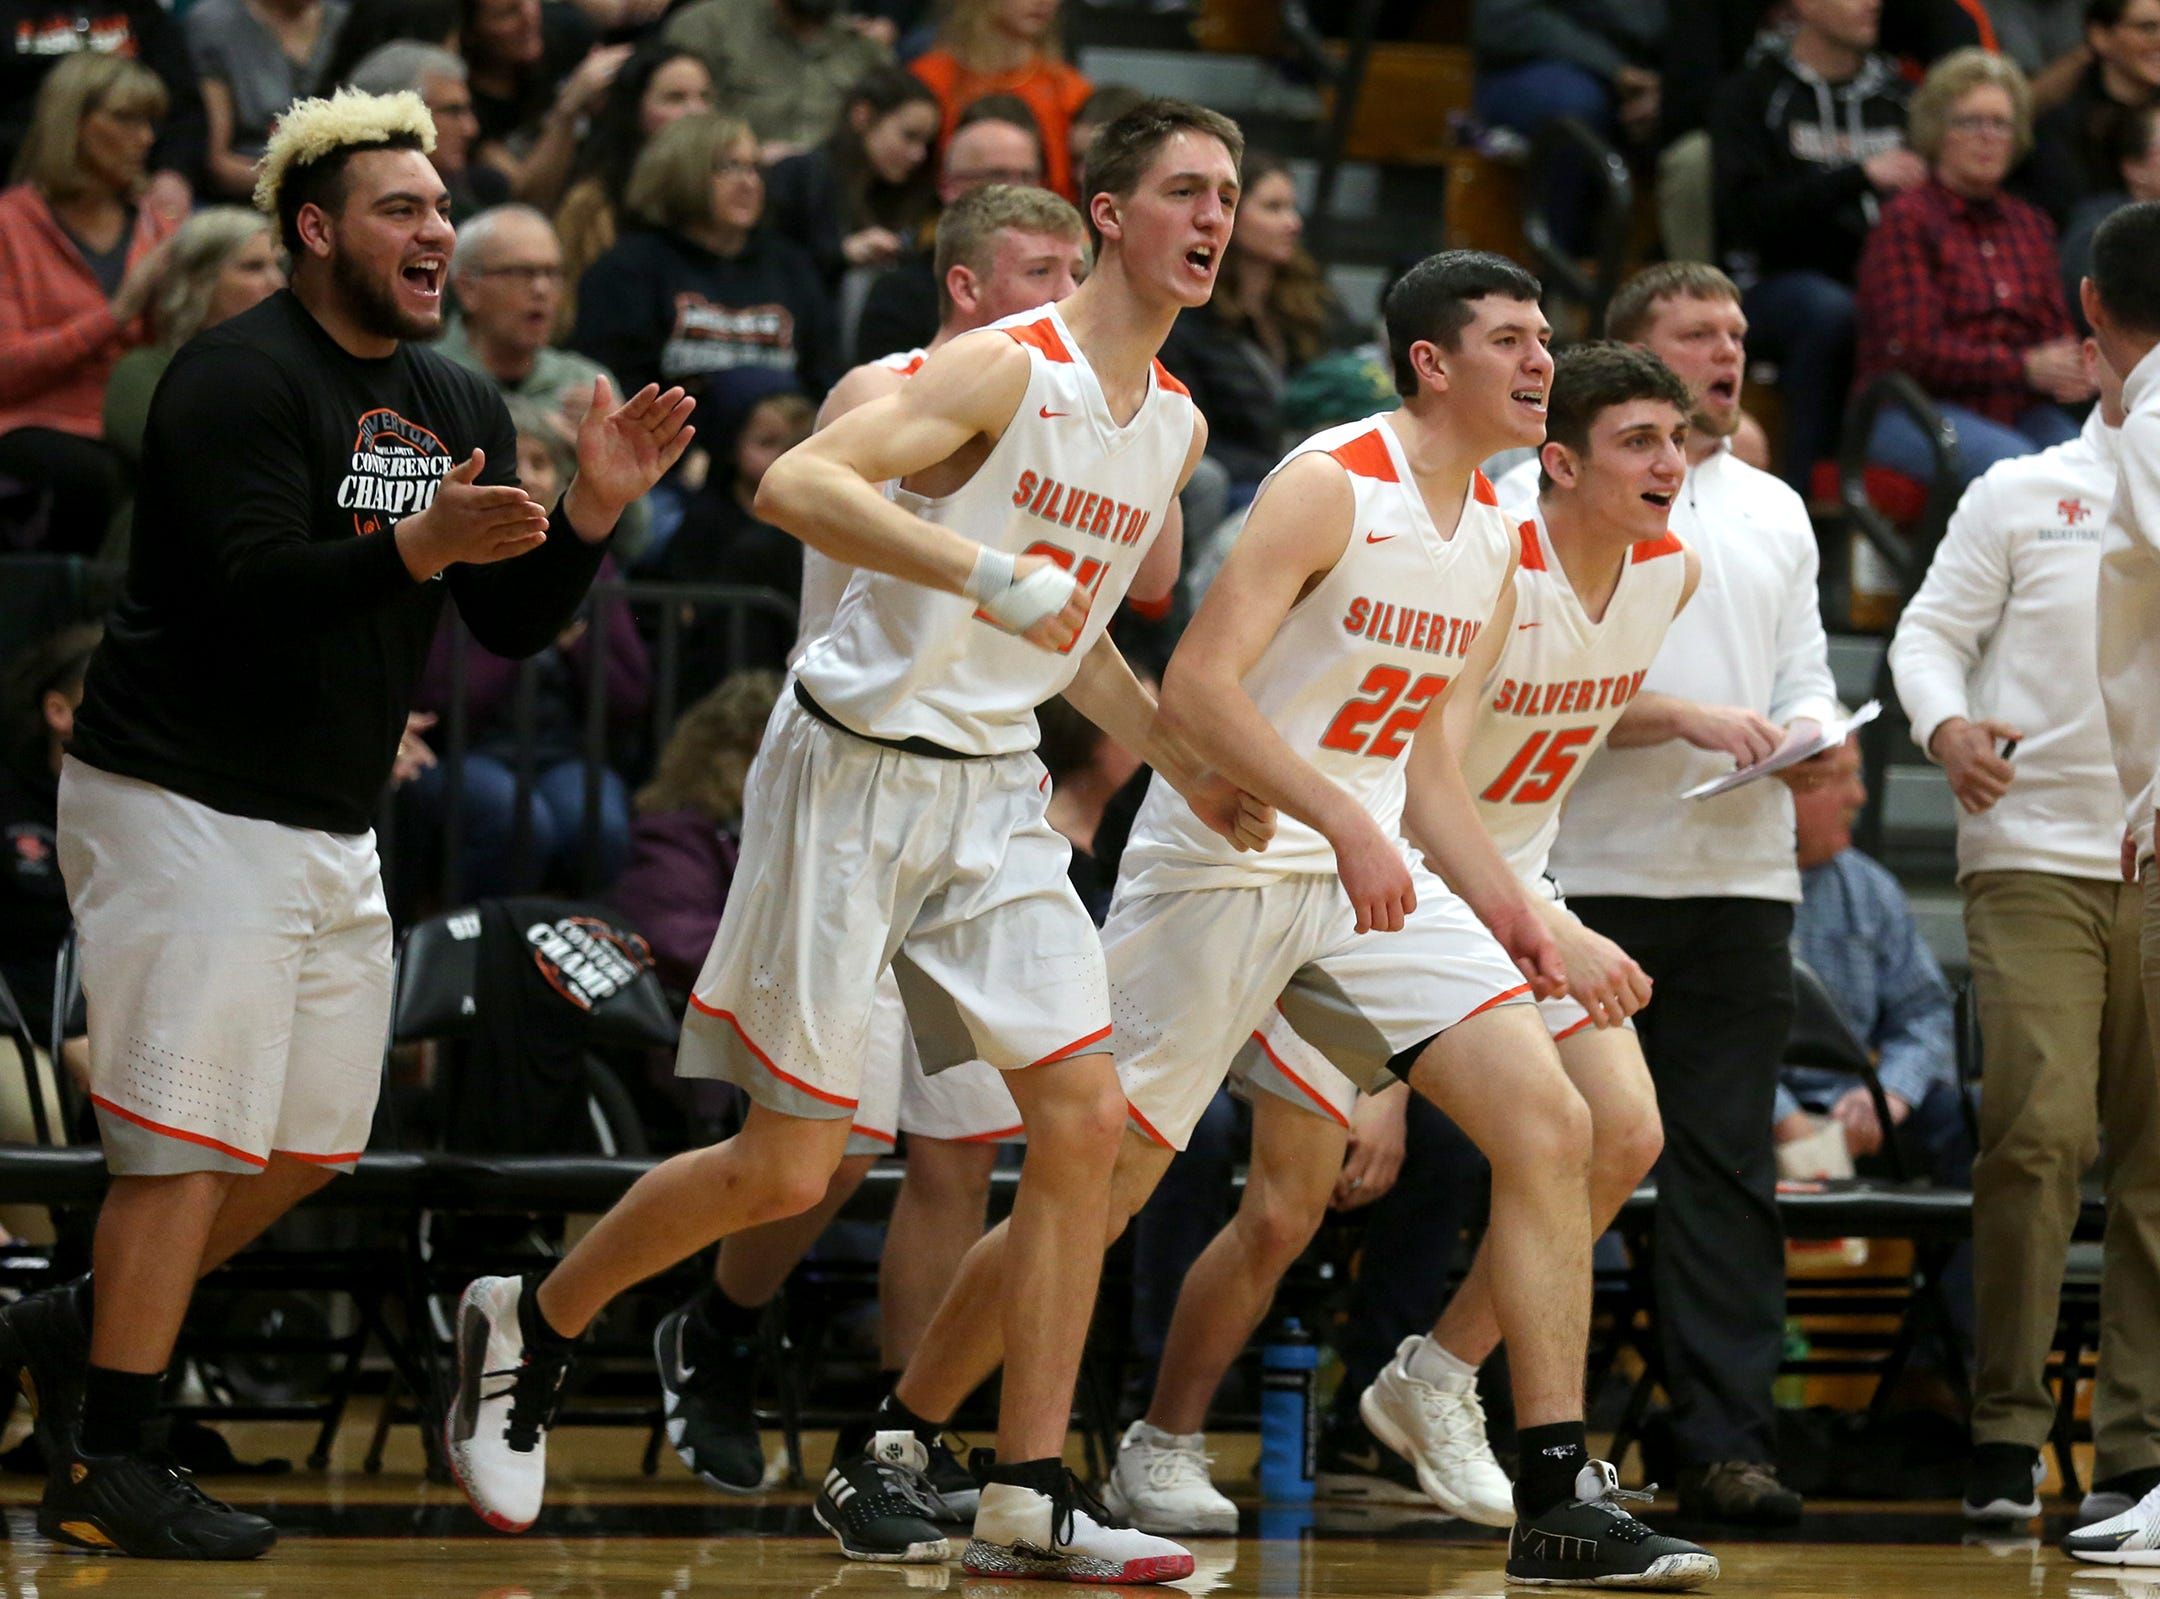 Silverton's bench cheers on their team during the Silverton vs. Springfield boys basketball OSAA state playoffs game at Silverton High School in Silverton on Saturday, March 2, 2019.